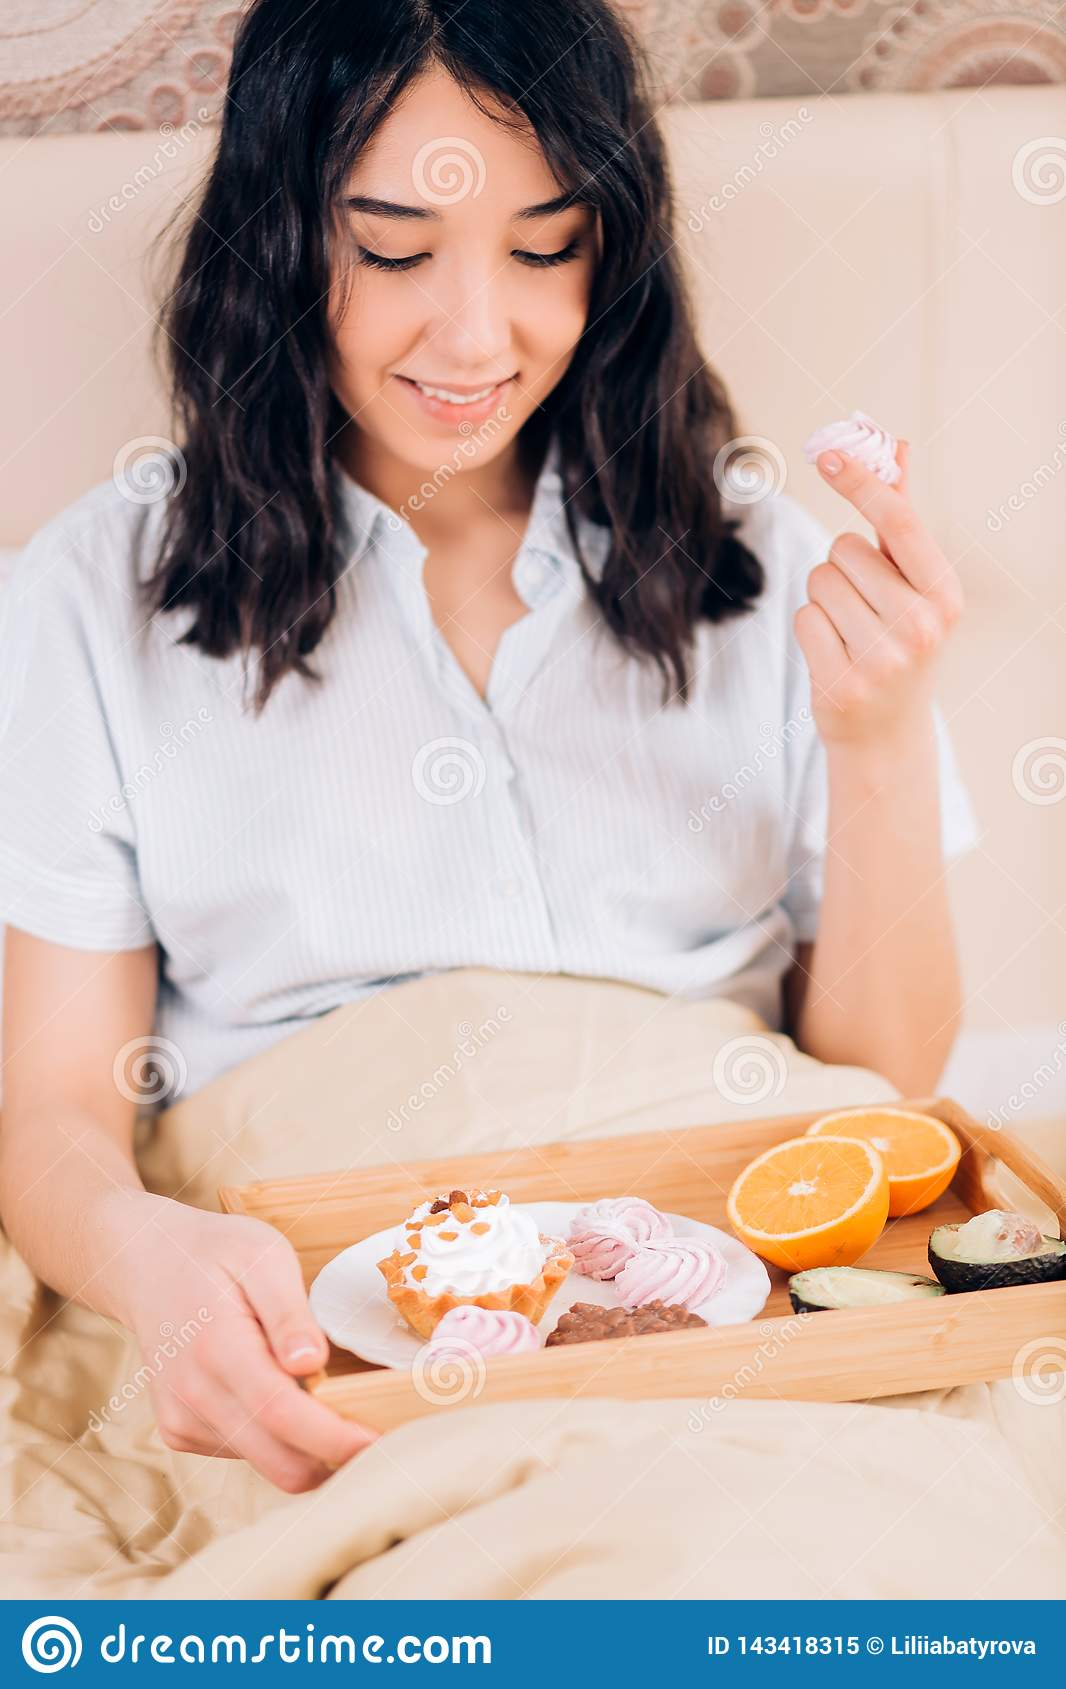 Beautiful awesome dark haired woman having tasty breakfast in bed at her cozy bedroom. Side view photo of young girl in blue